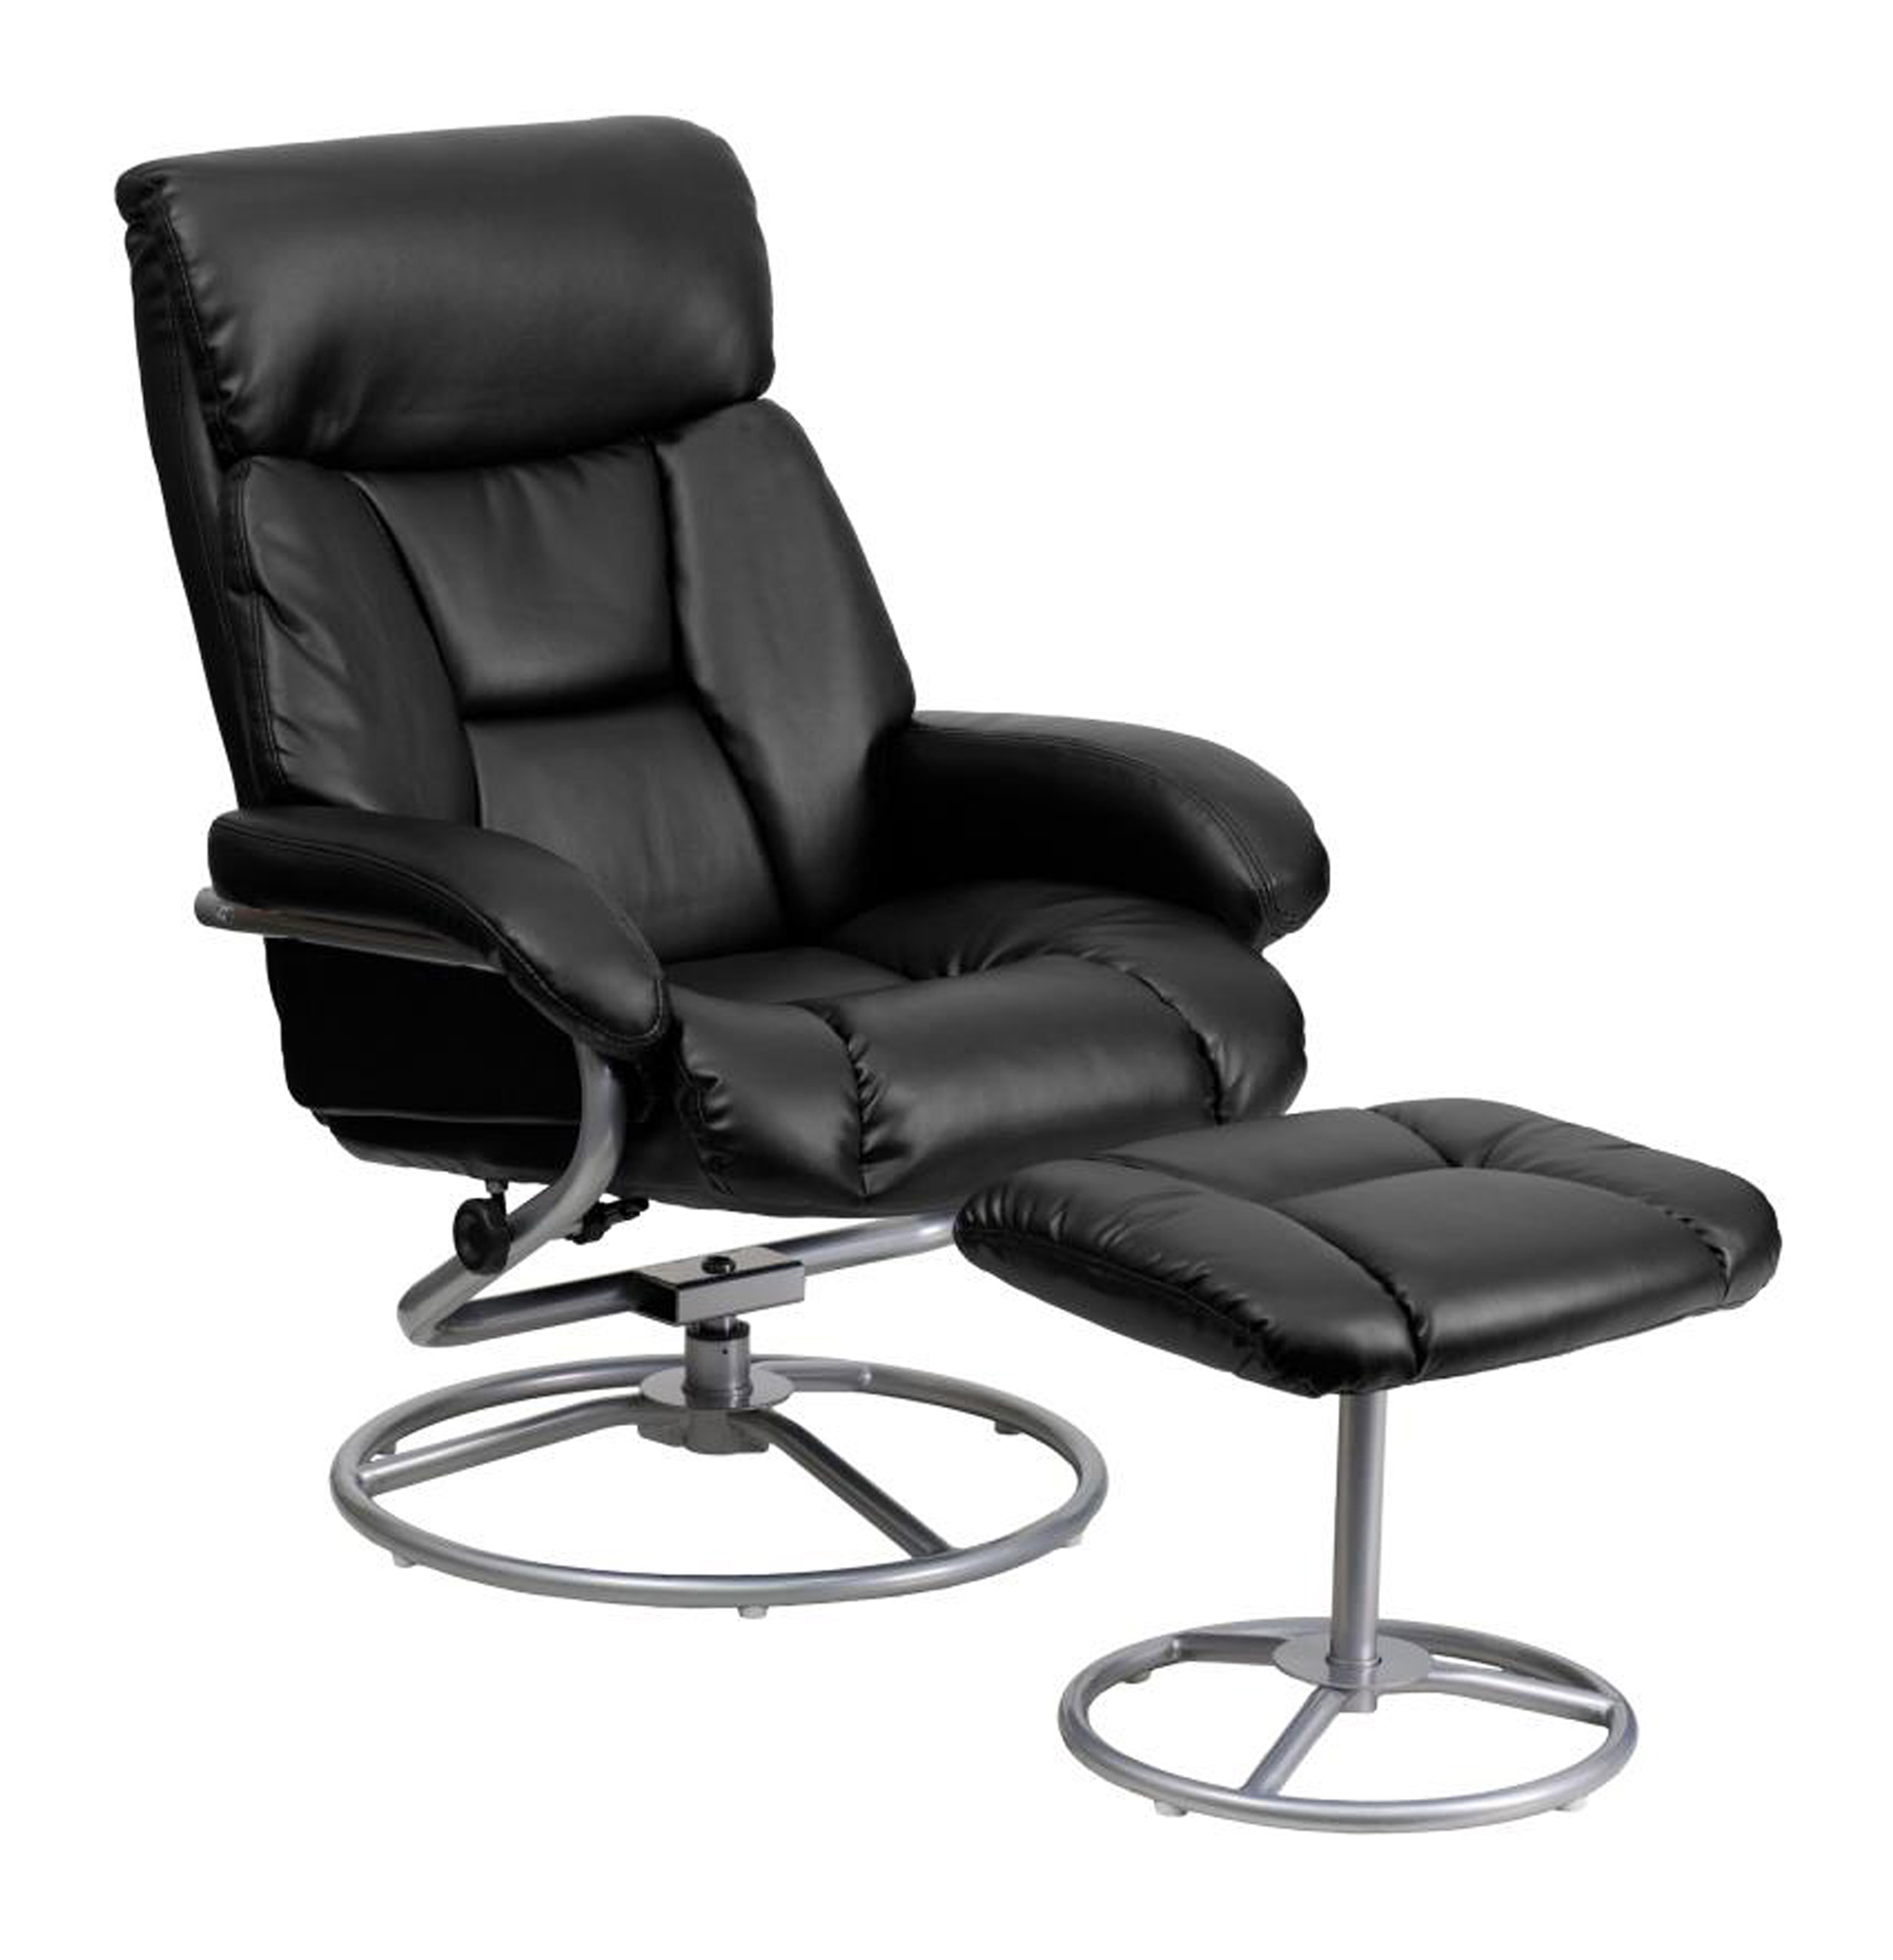 Offex Contemporary Black Leather Recliner And Ottoman With Metal Base [BT-70230-BK-CIR-GG]